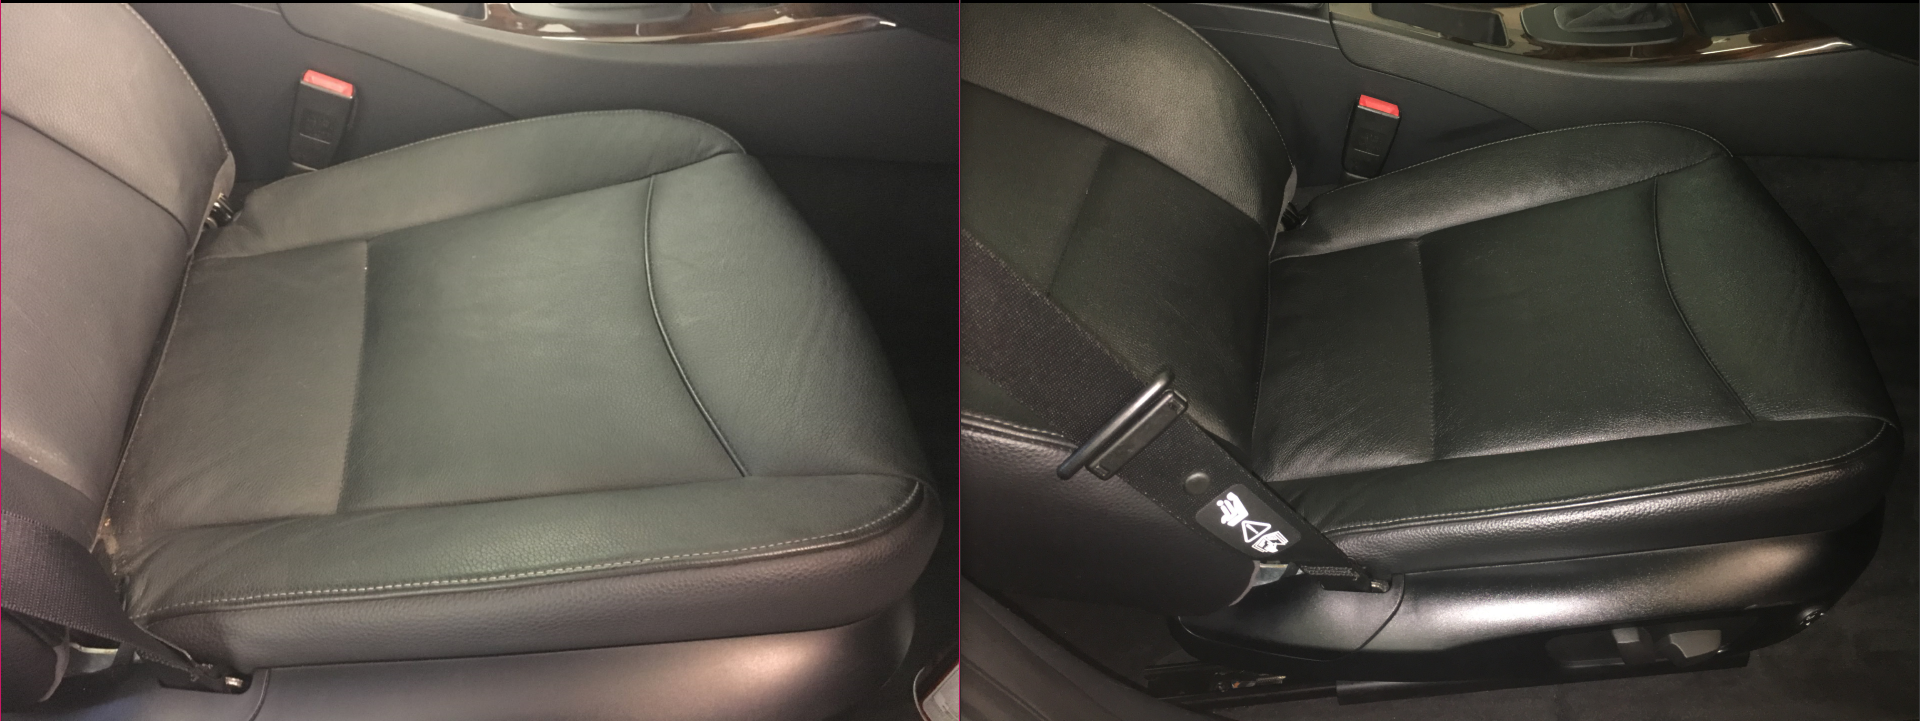 Leather Seats Cleaned & Conditioned